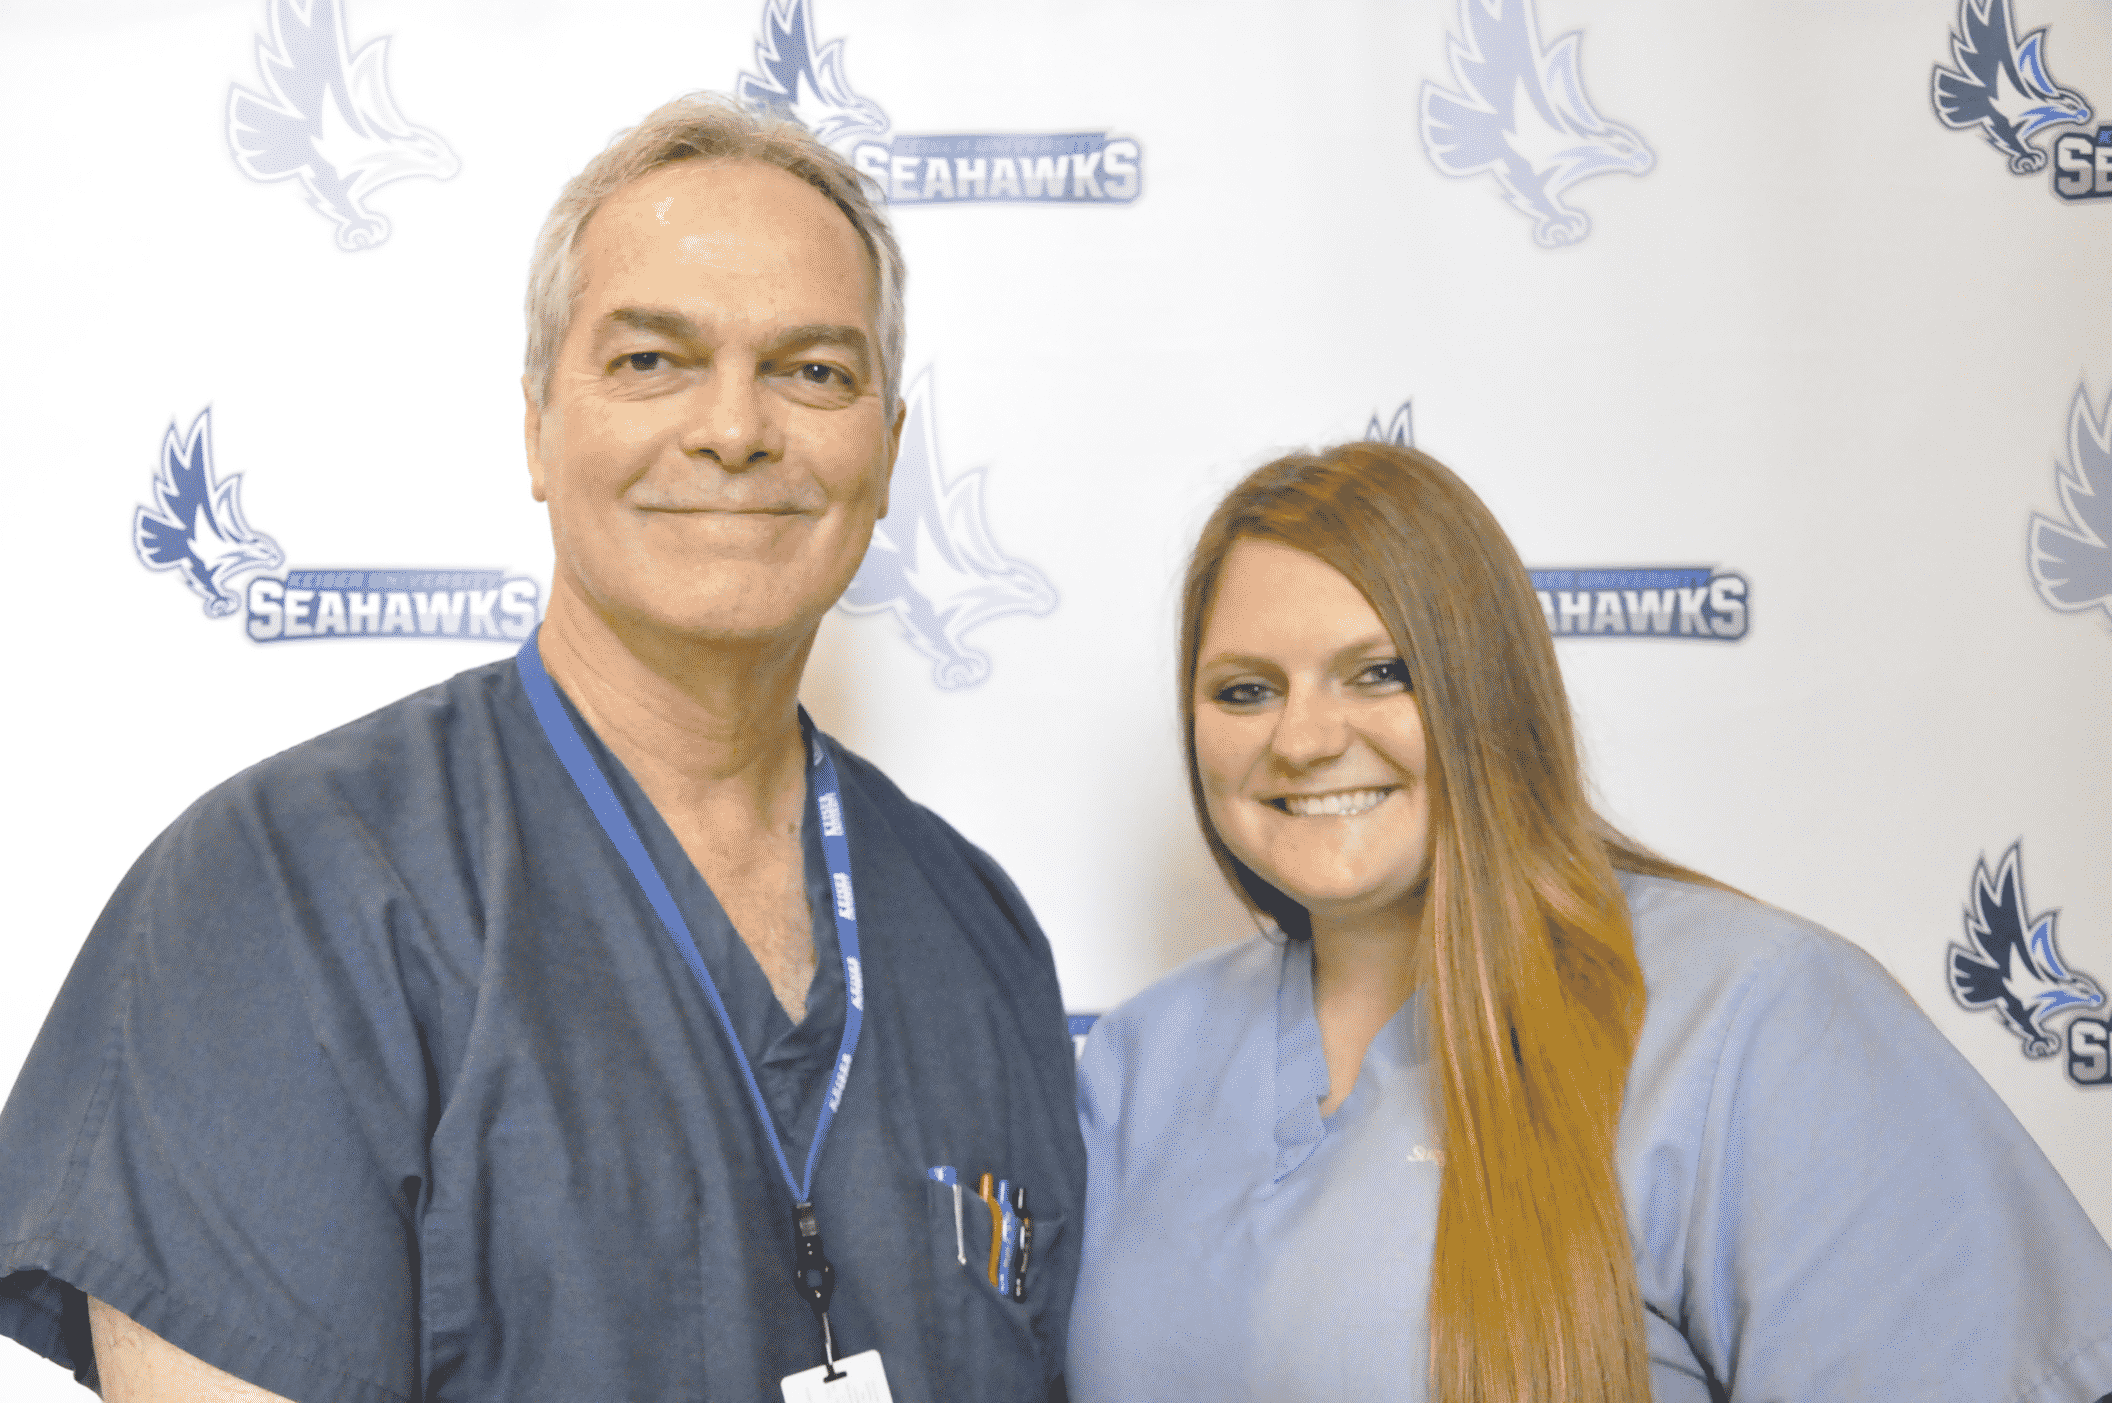 STUDENT SPOTLIGHT: Kelsea Barker, Surgical Technology at KU Tampa